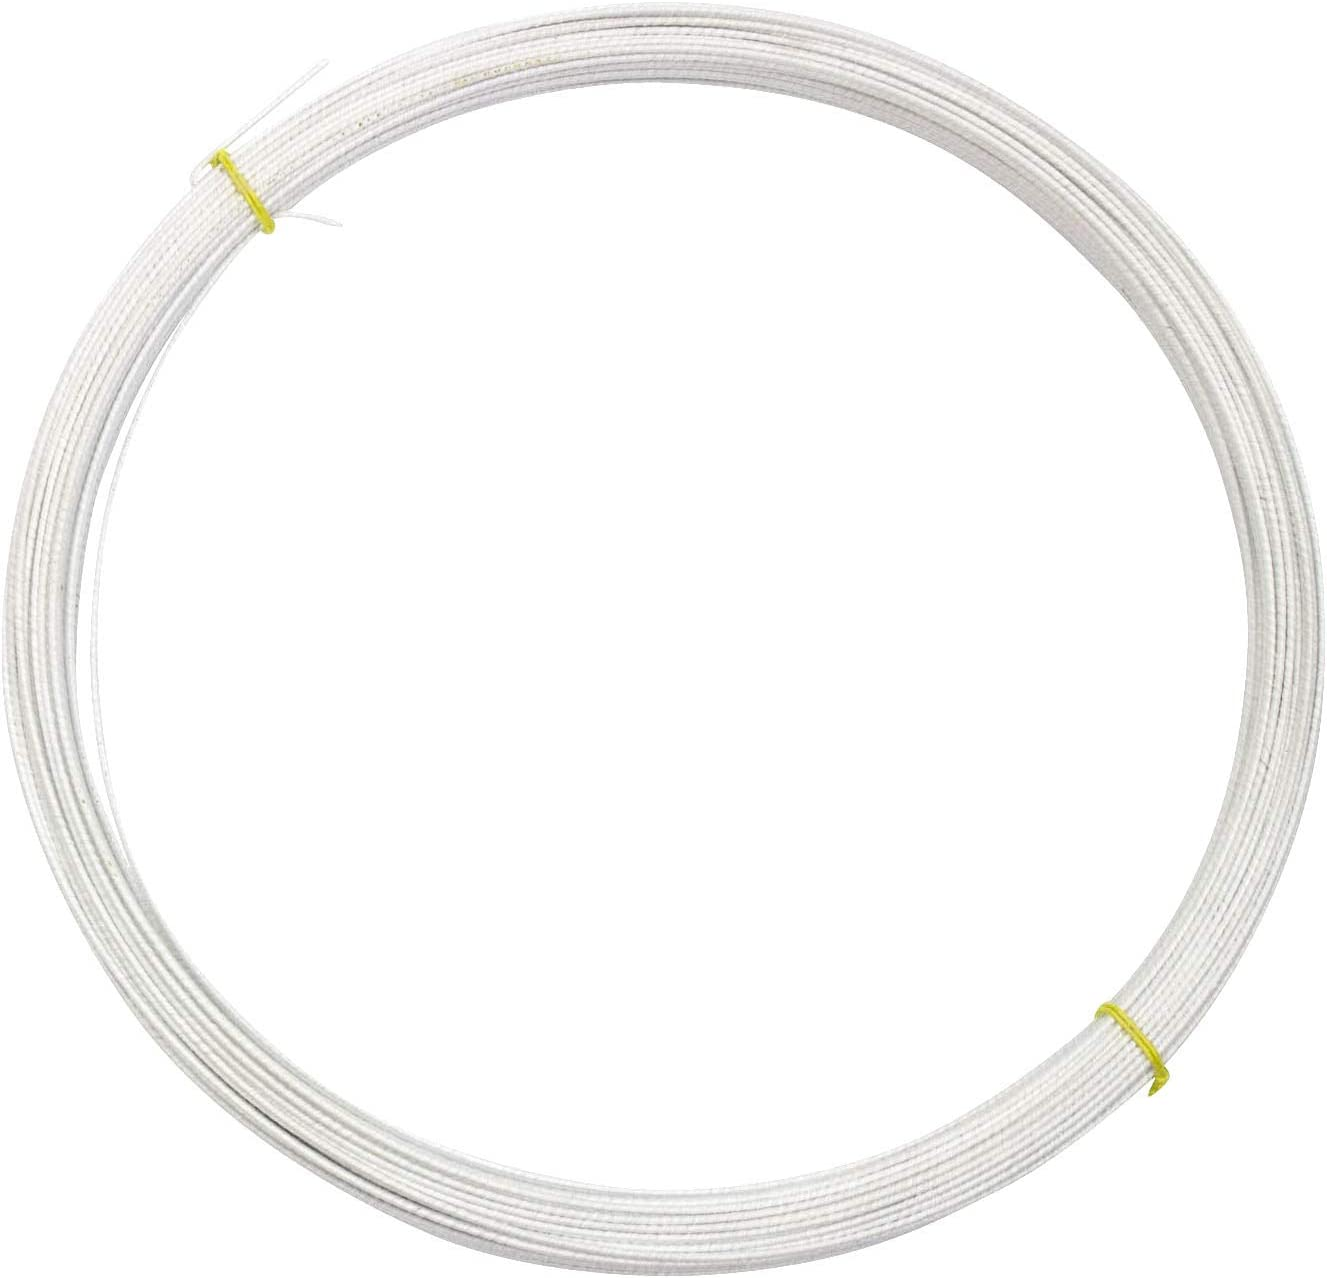 20 Yds 1.5mm Transparent Polyester Plastic Memory Wire for Millinery Hat Brims